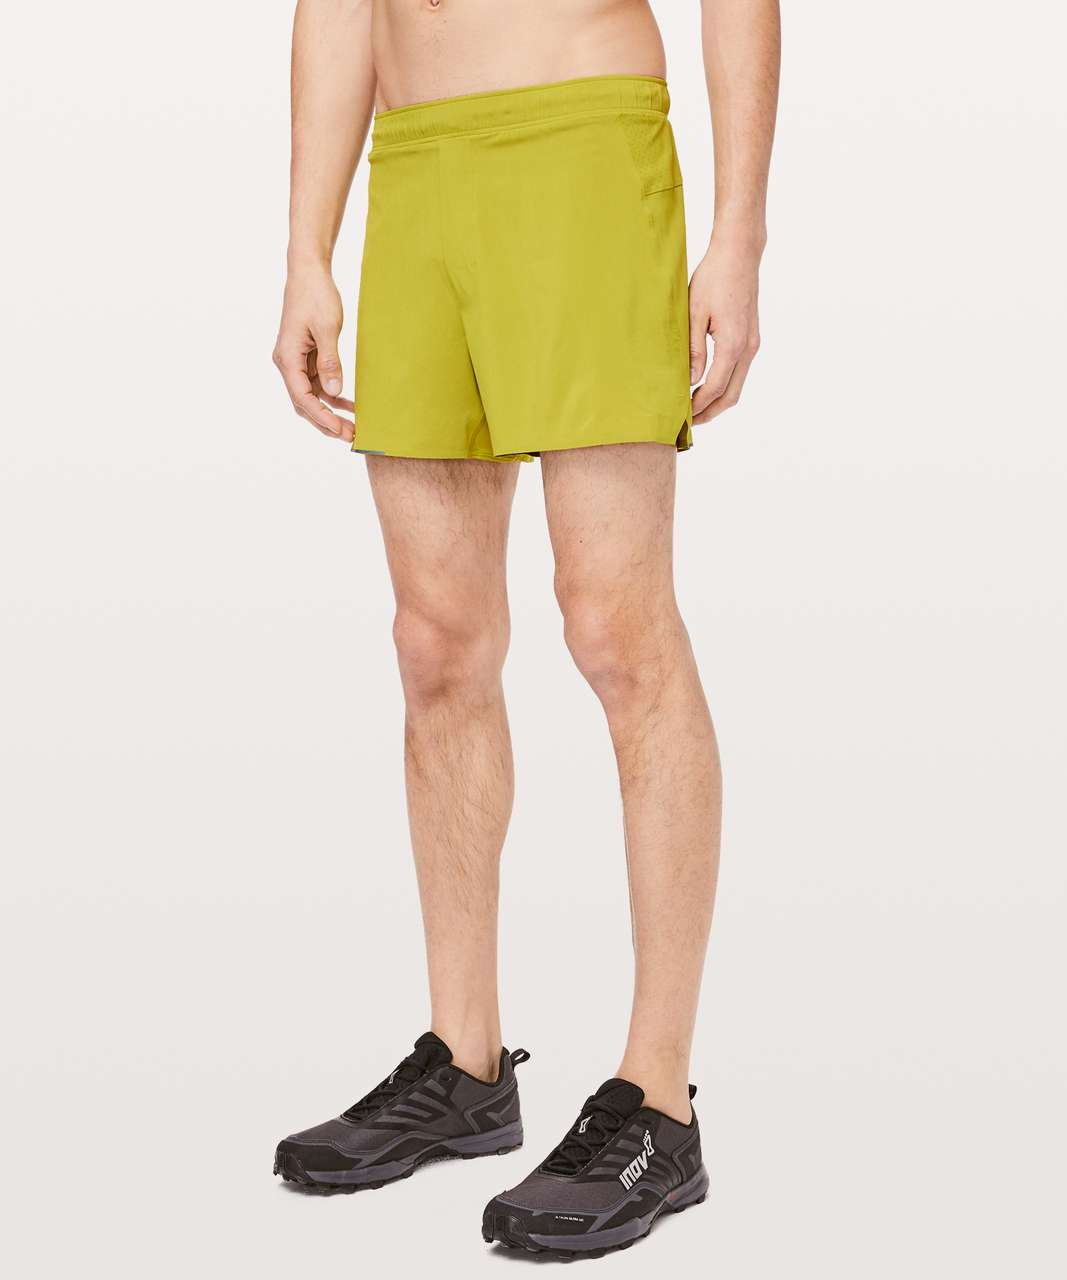 "Lululemon Surge Short 4"" *Liner - Golden Lime"